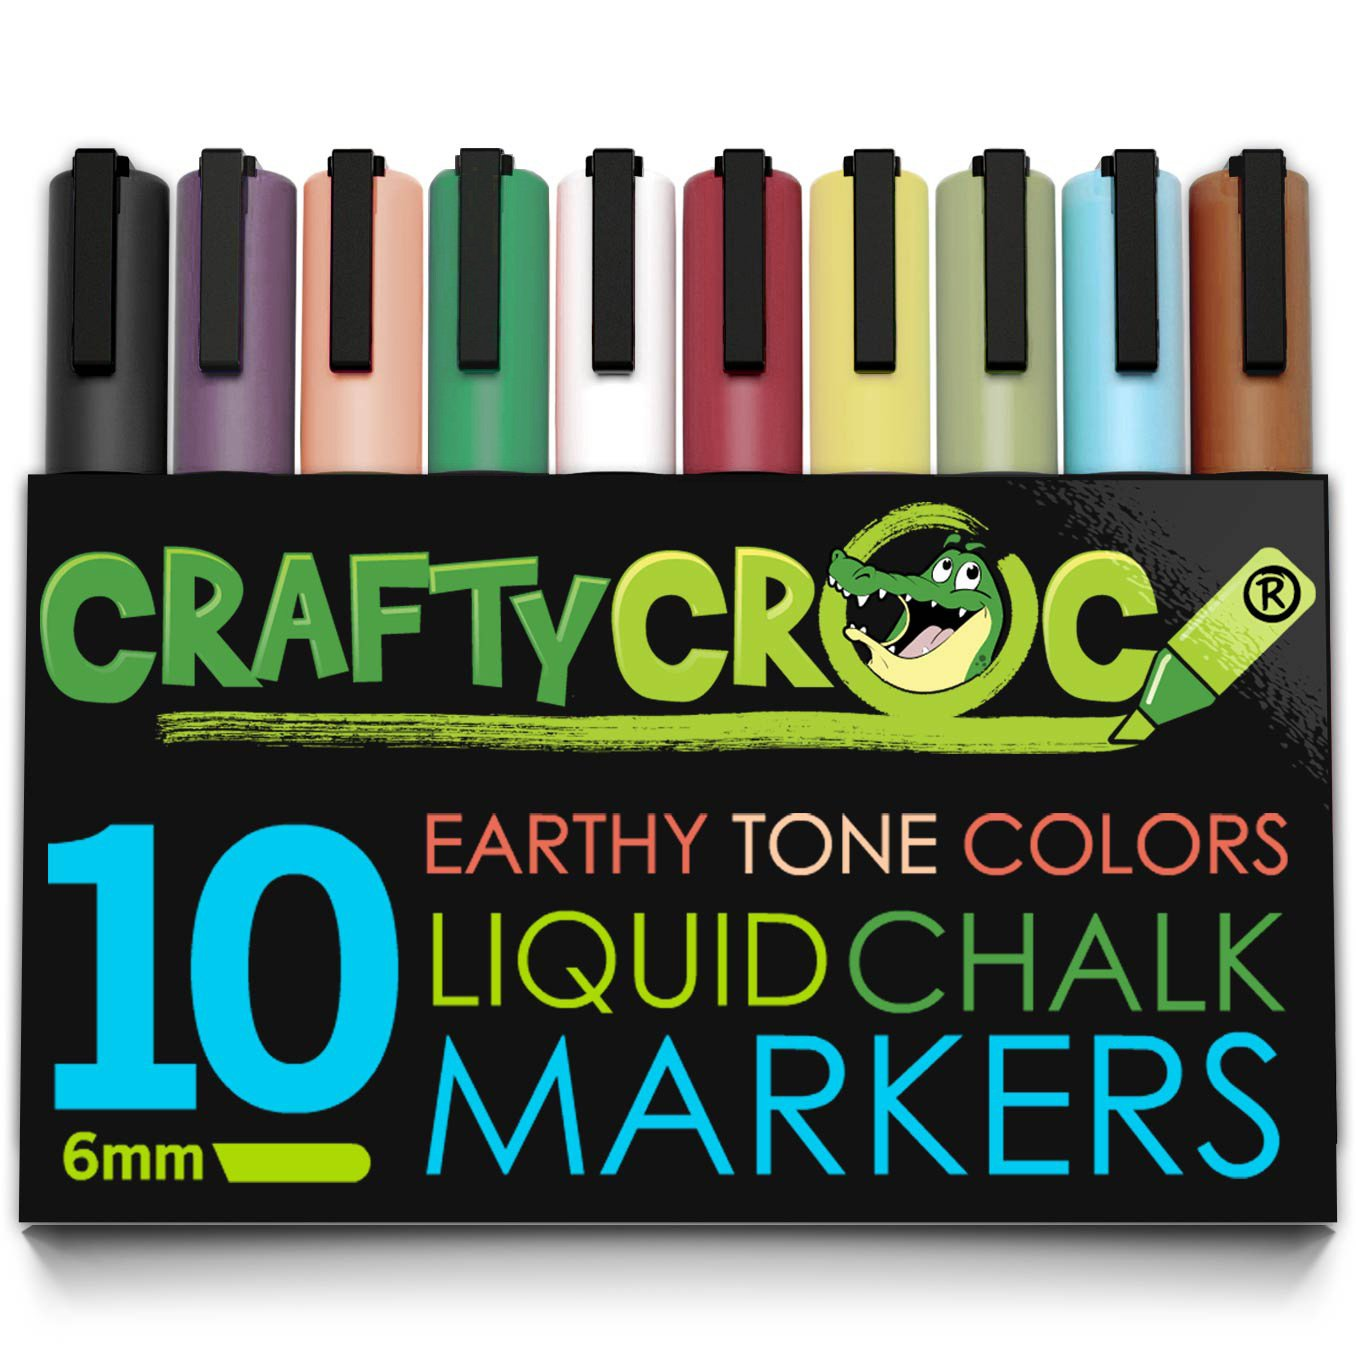 Crafty Croc Wet Erase Liquid Chalk Markers, Pack of 10 Earth Colors